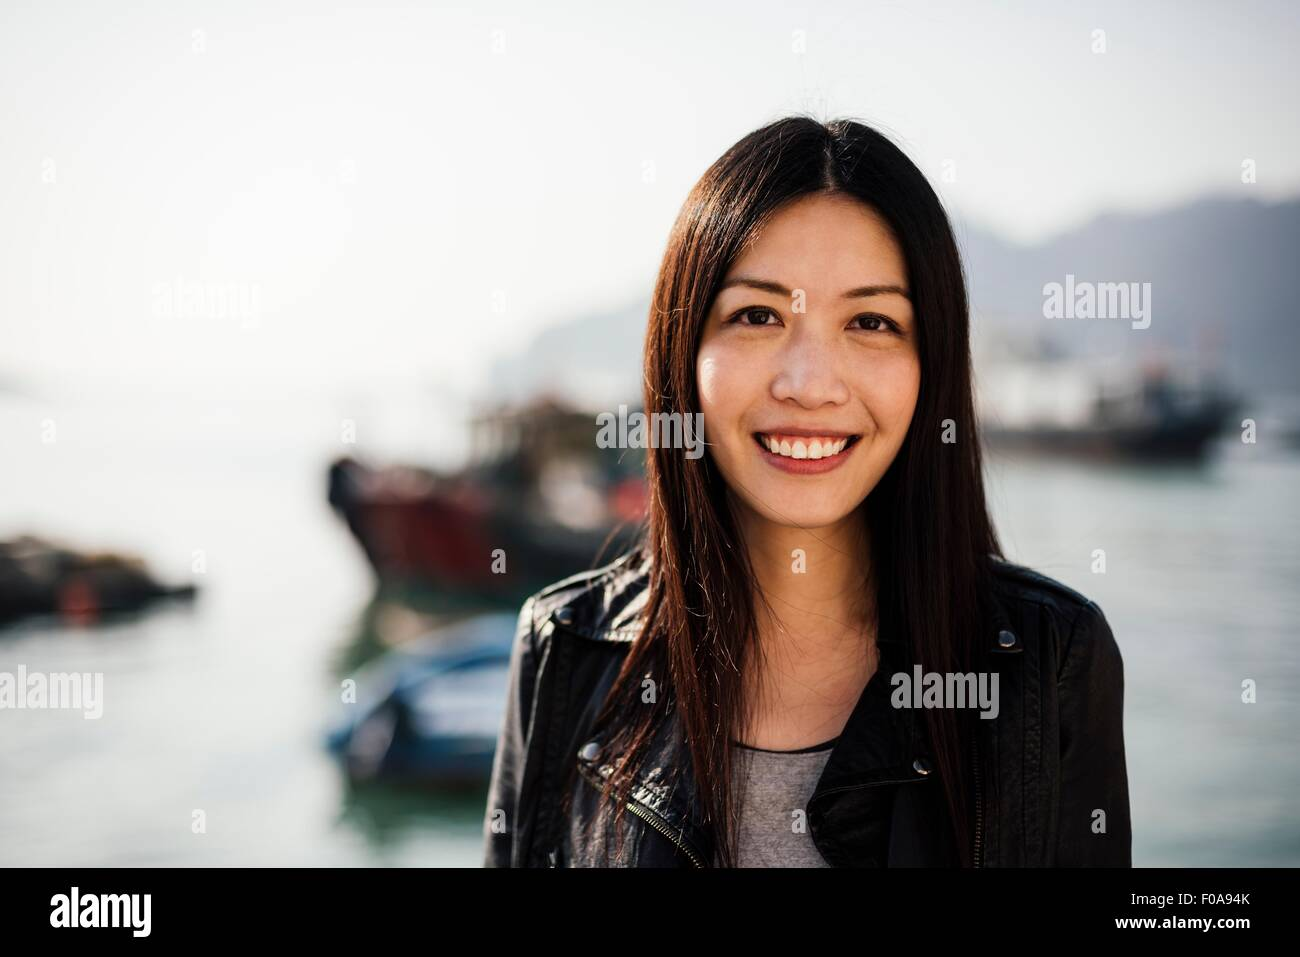 Portrait of young woman in front of boats on water, looking at camera smiling - Stock Image